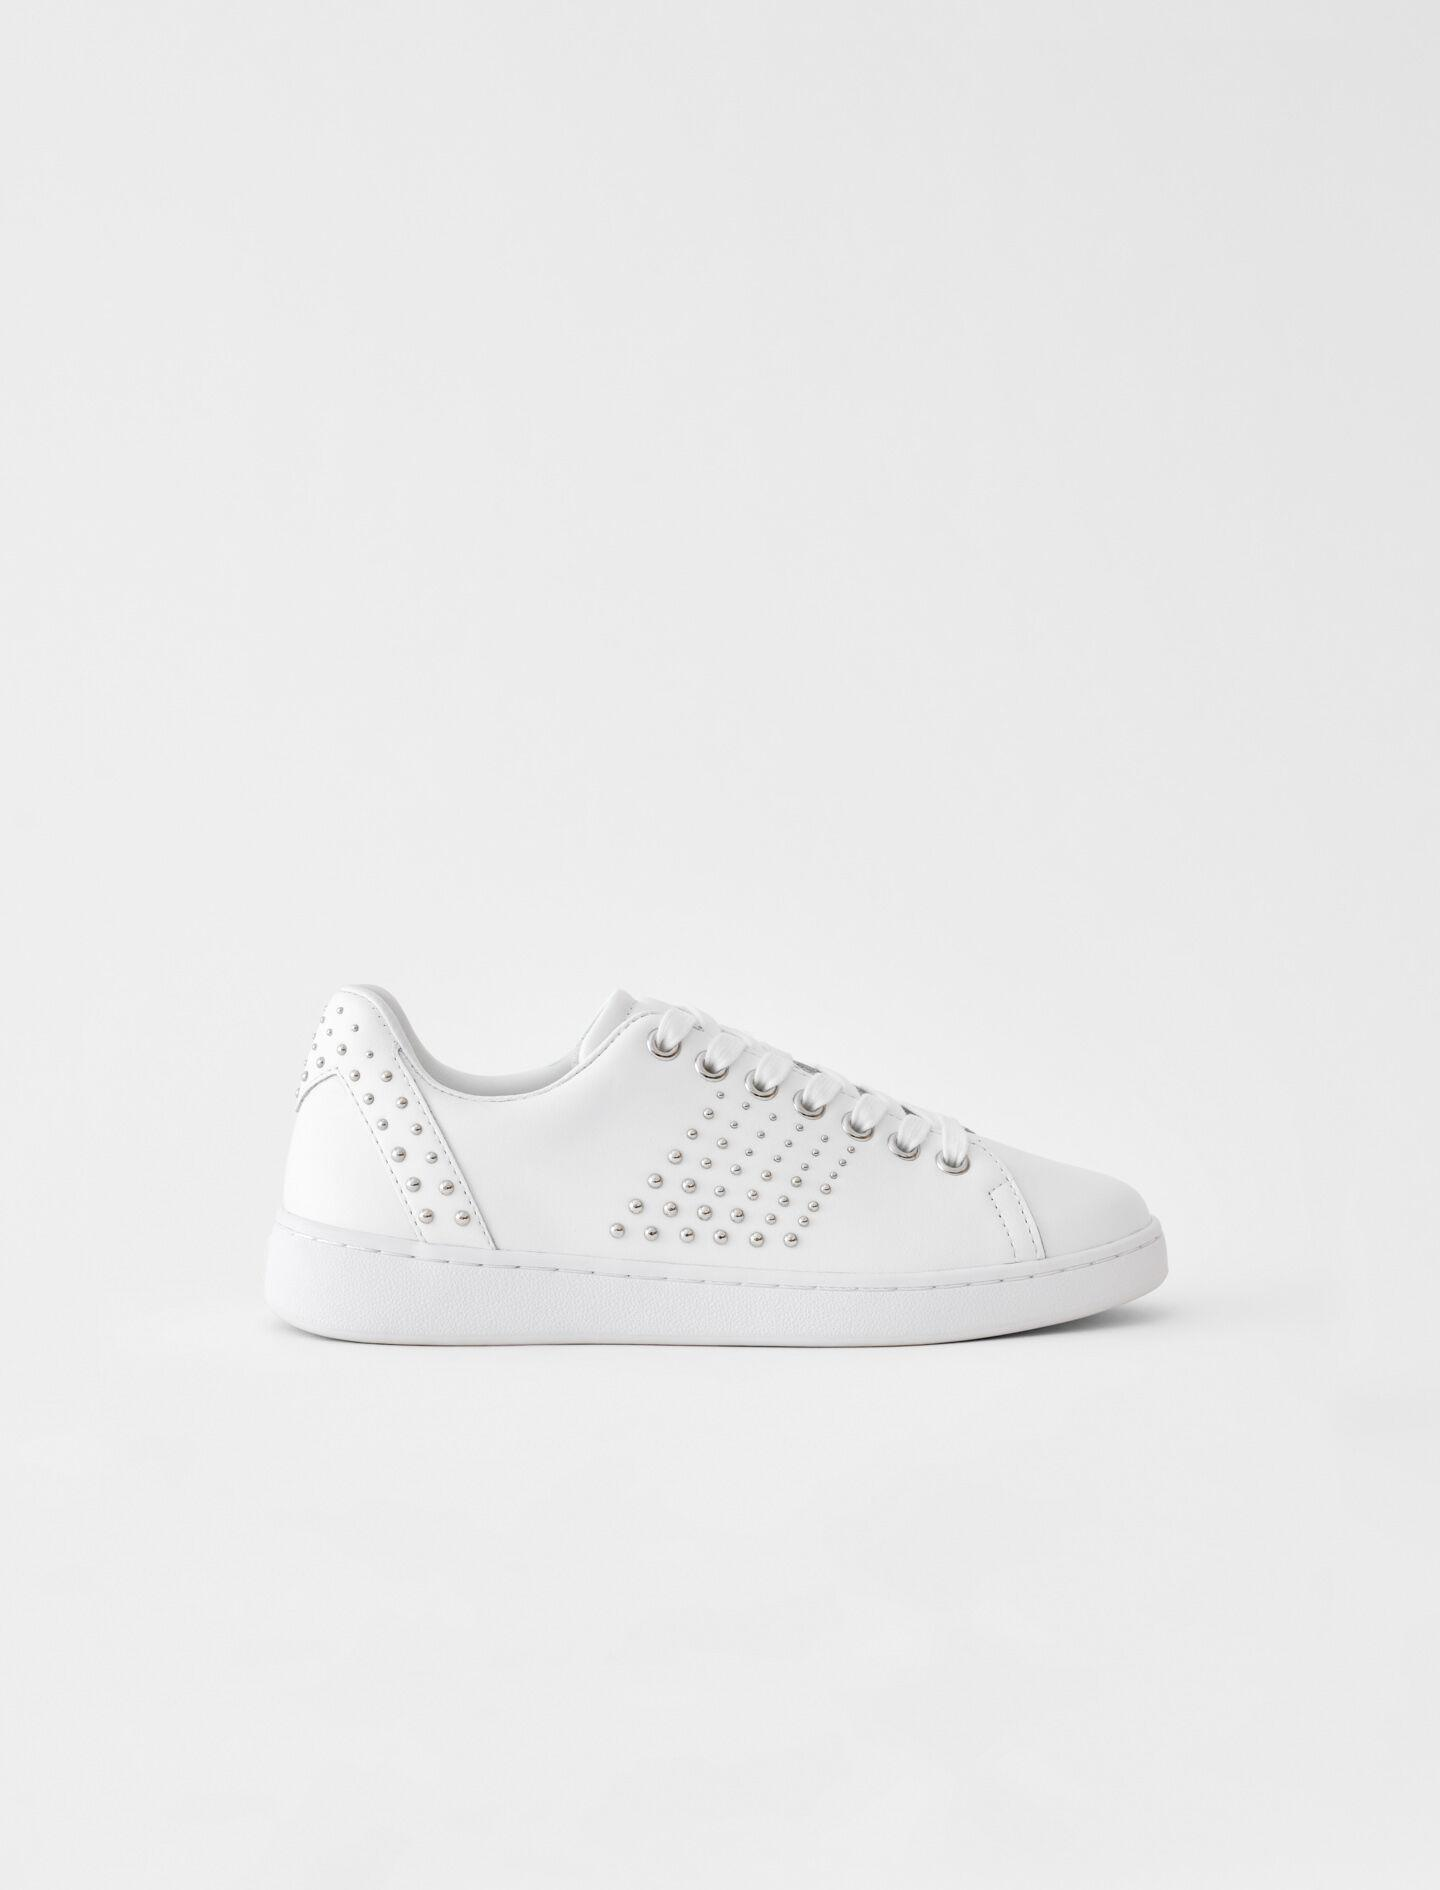 WHITE LEATHER SNEAKERS WITH STUDS